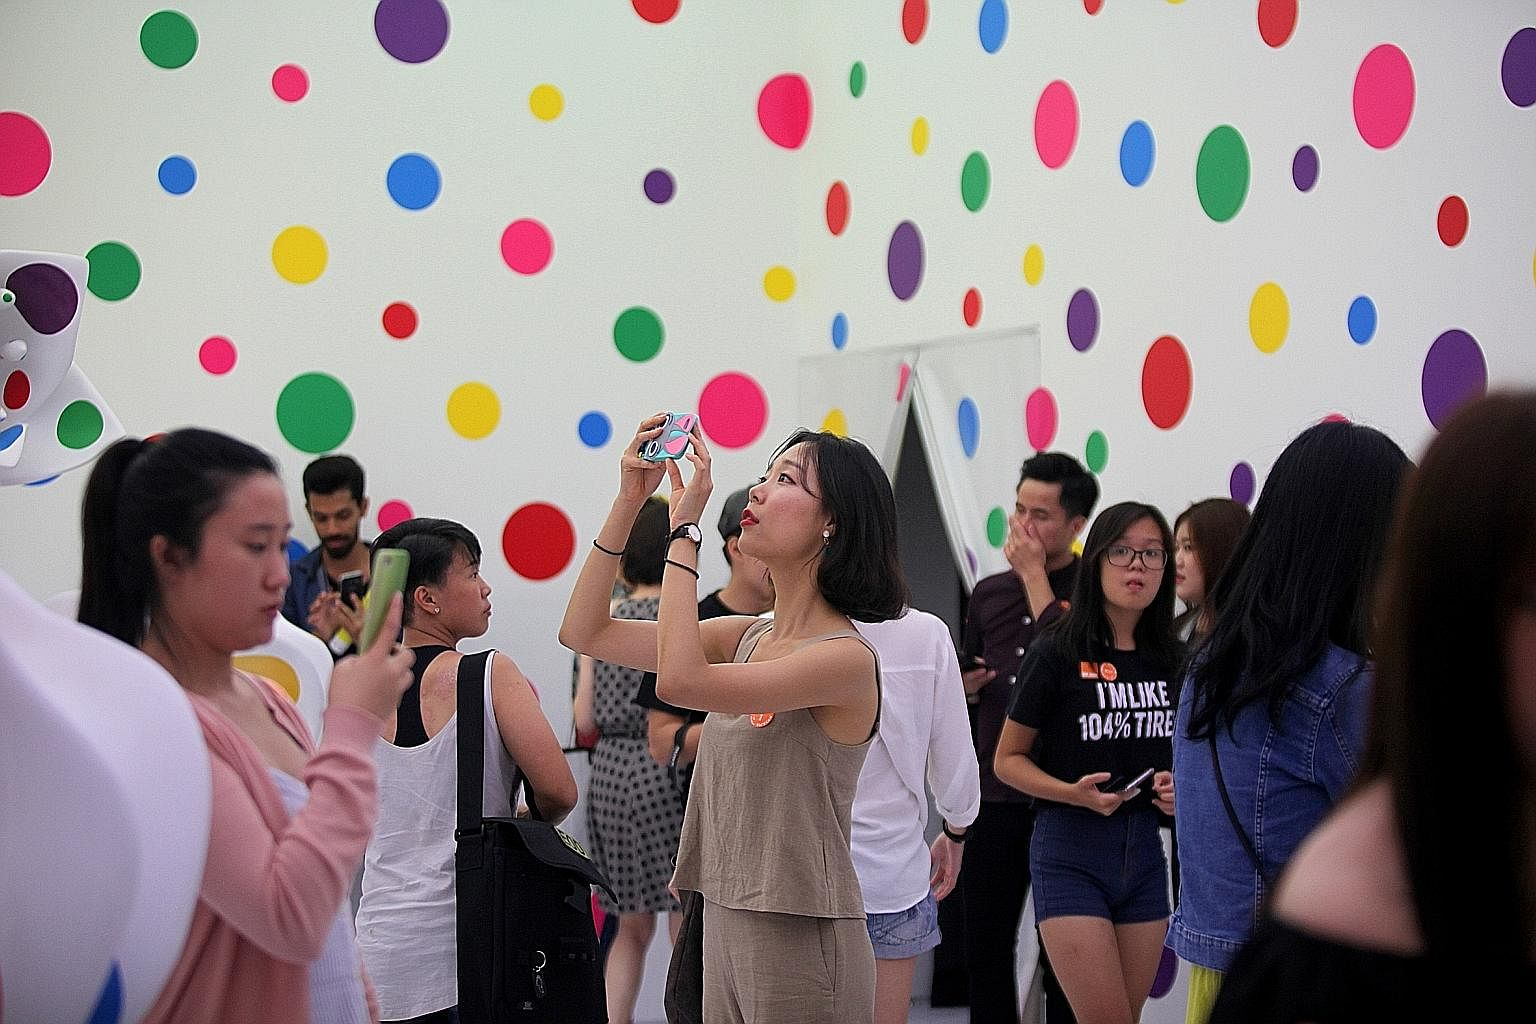 Yayoi Kusama's exhibition at the National Gallery earlier this year drew more than 235,000 visitors in total.